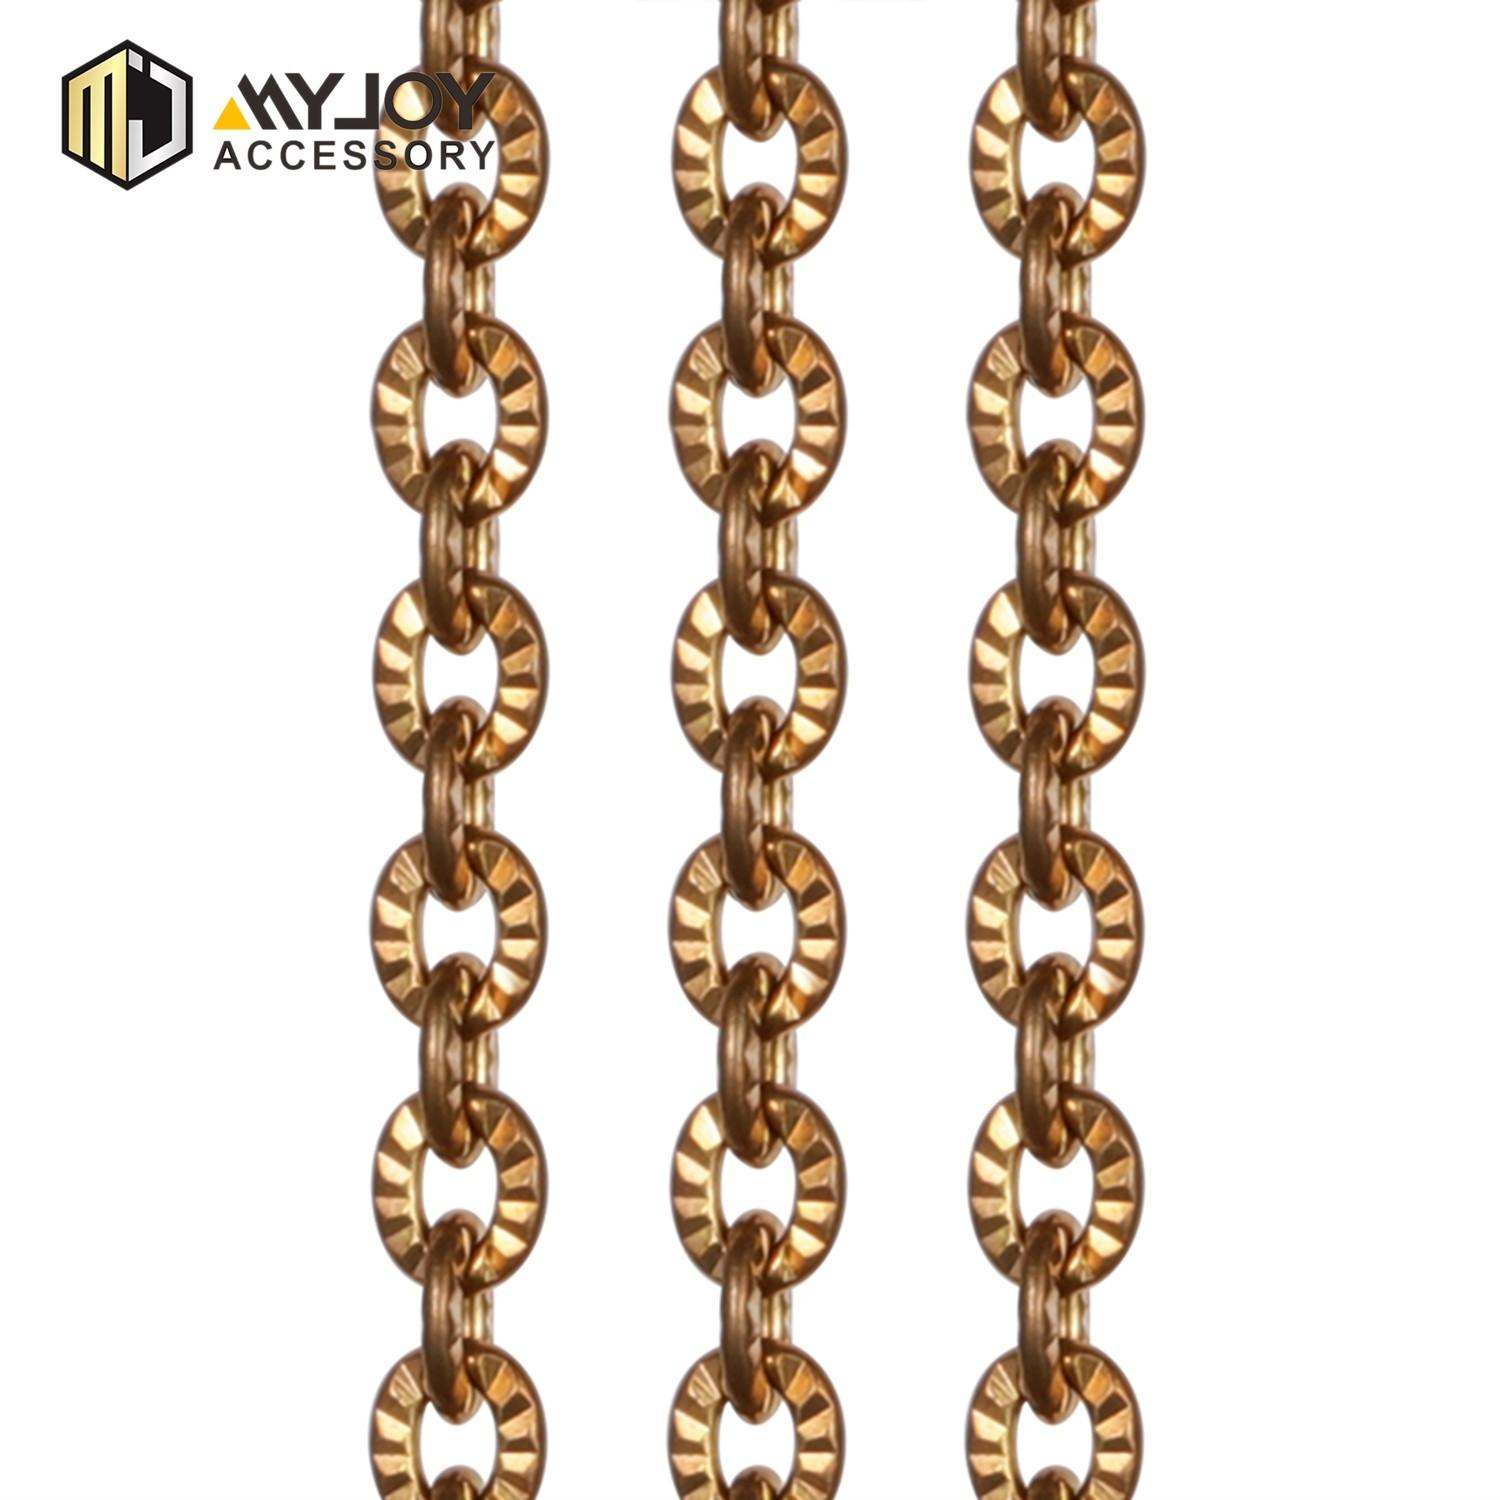 MYJOY handbag chain strap company for bags-2